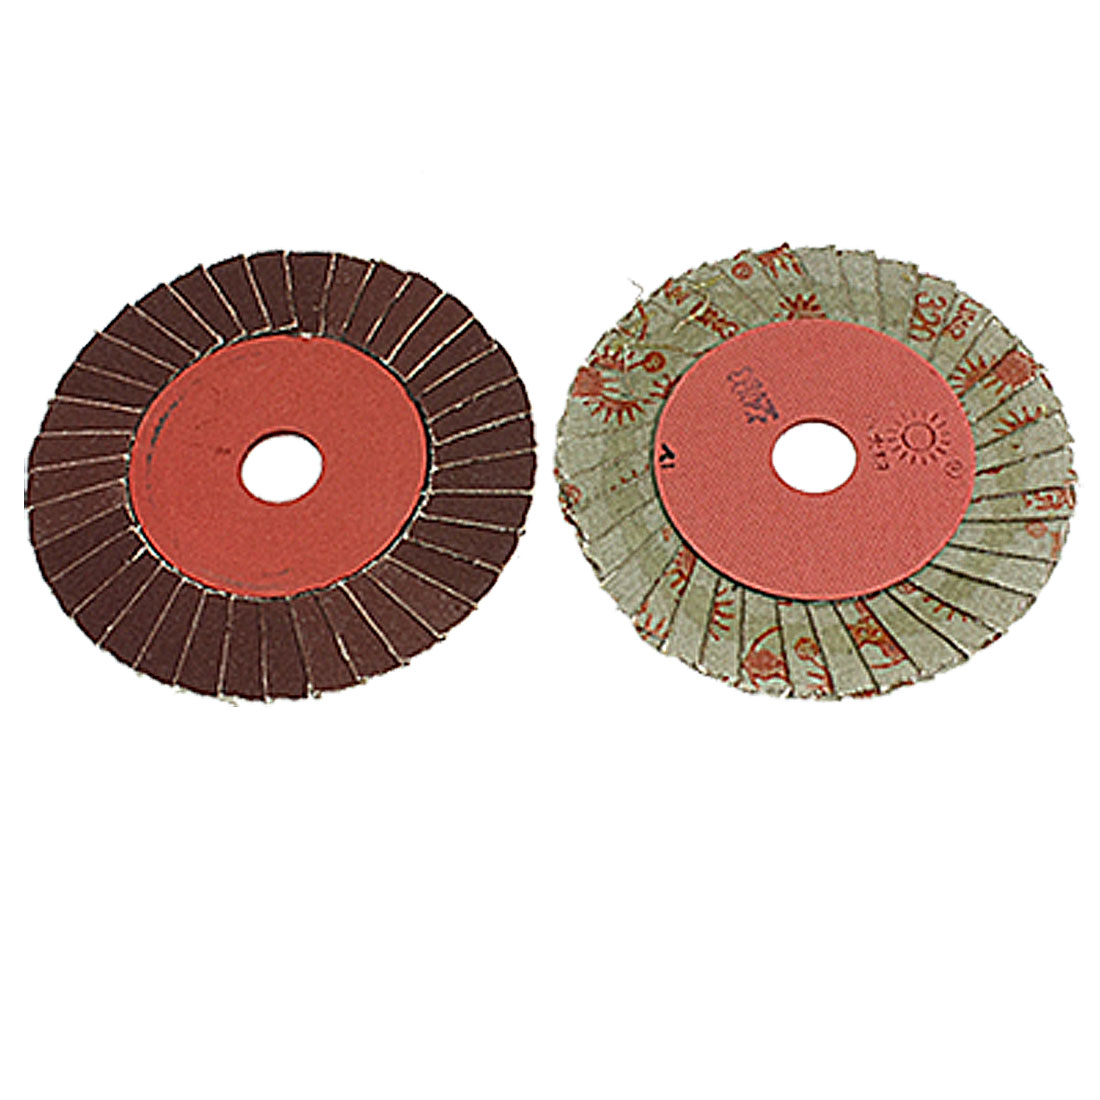 "2 Pcs 4"" Outside Diameter Grit Abrasive Flap Discs Polishing Buffing Wheels"